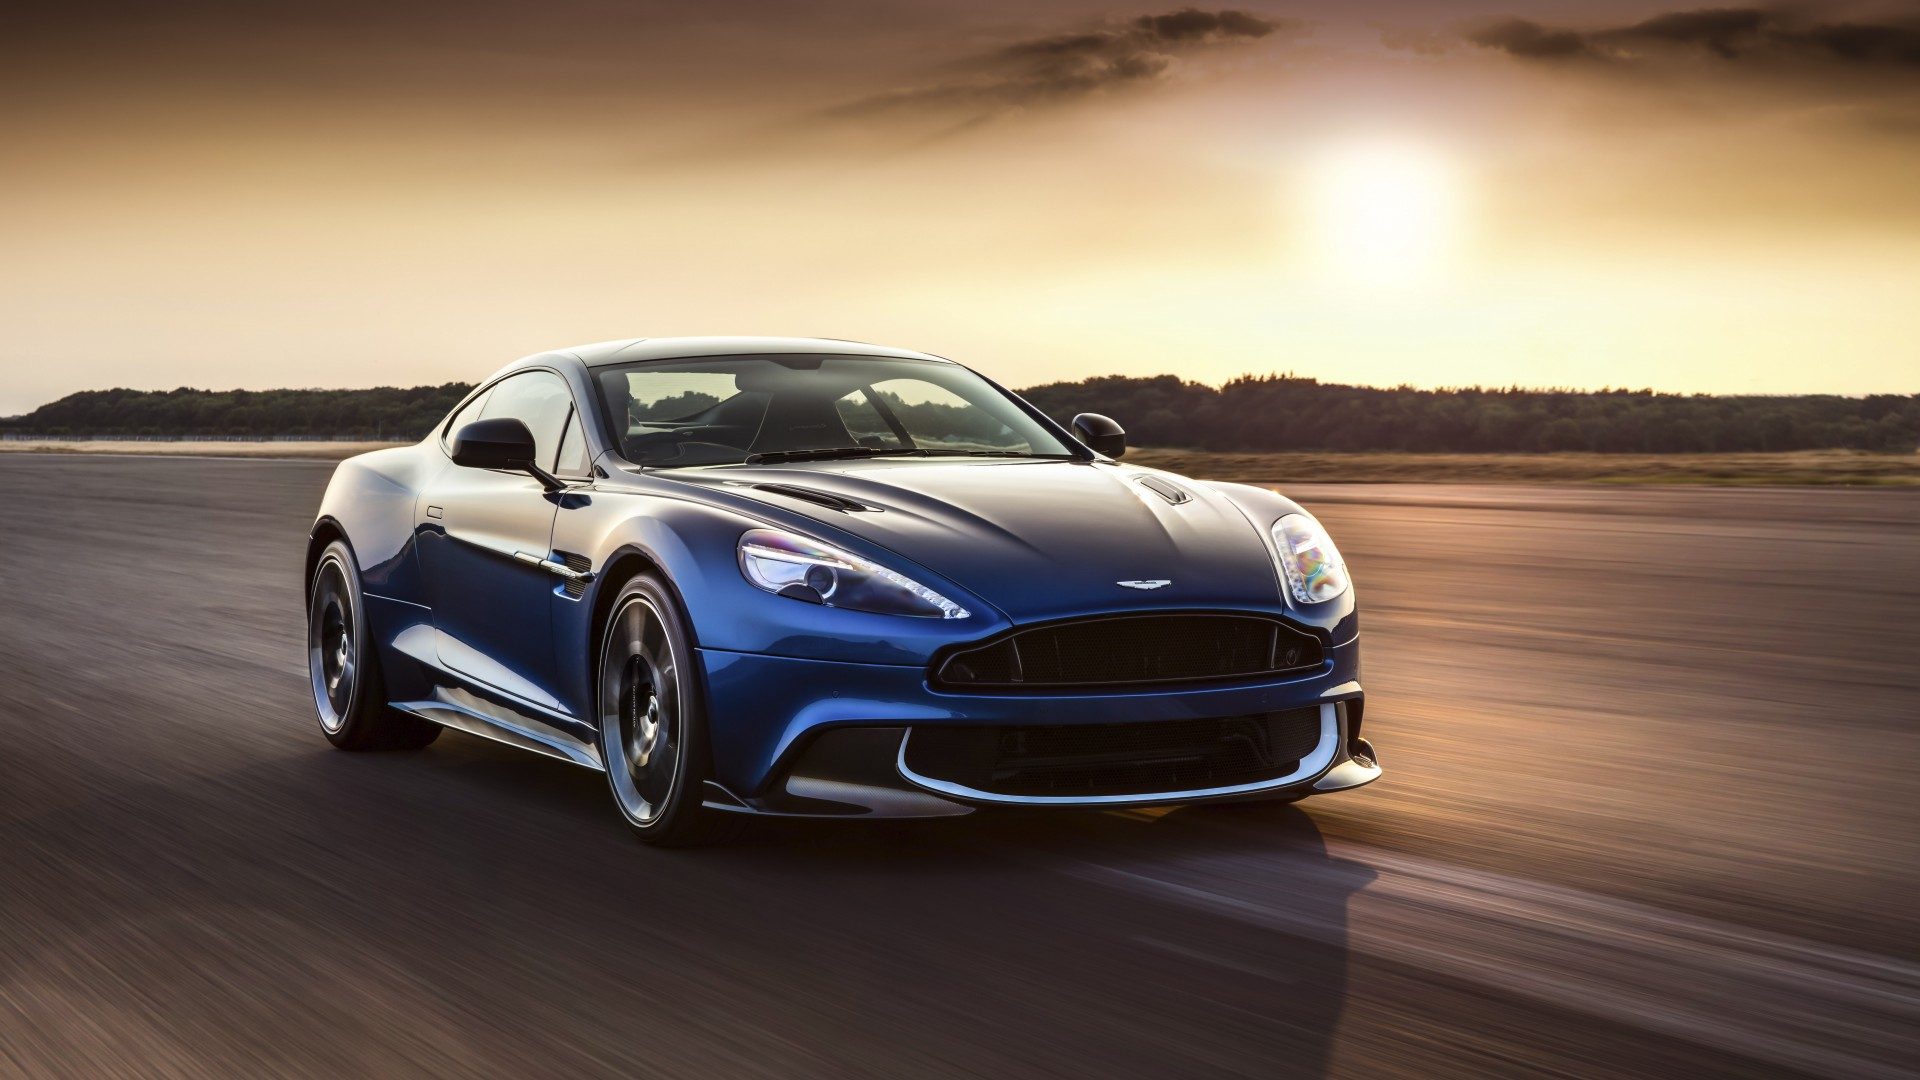 Aston Martin Vanquish S car review